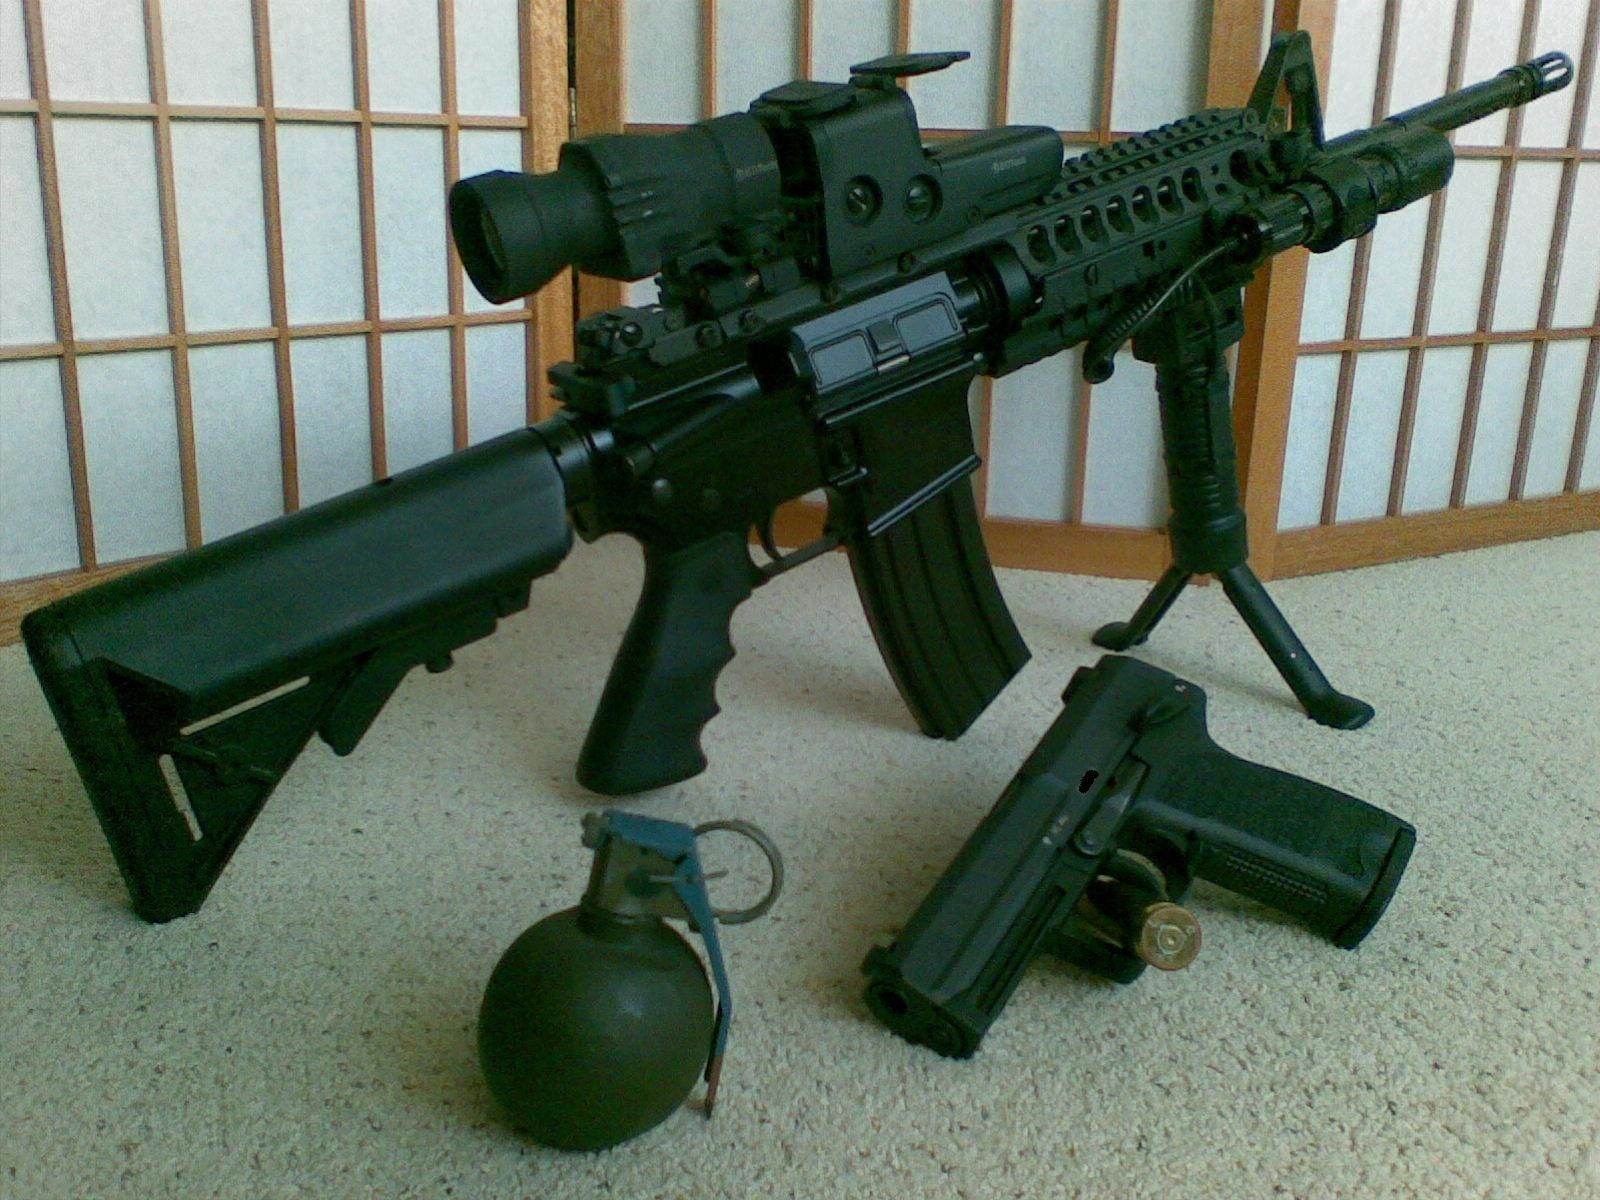 smith and wesson m p 15 eotech 512 and eotech 4x magnifier with fts